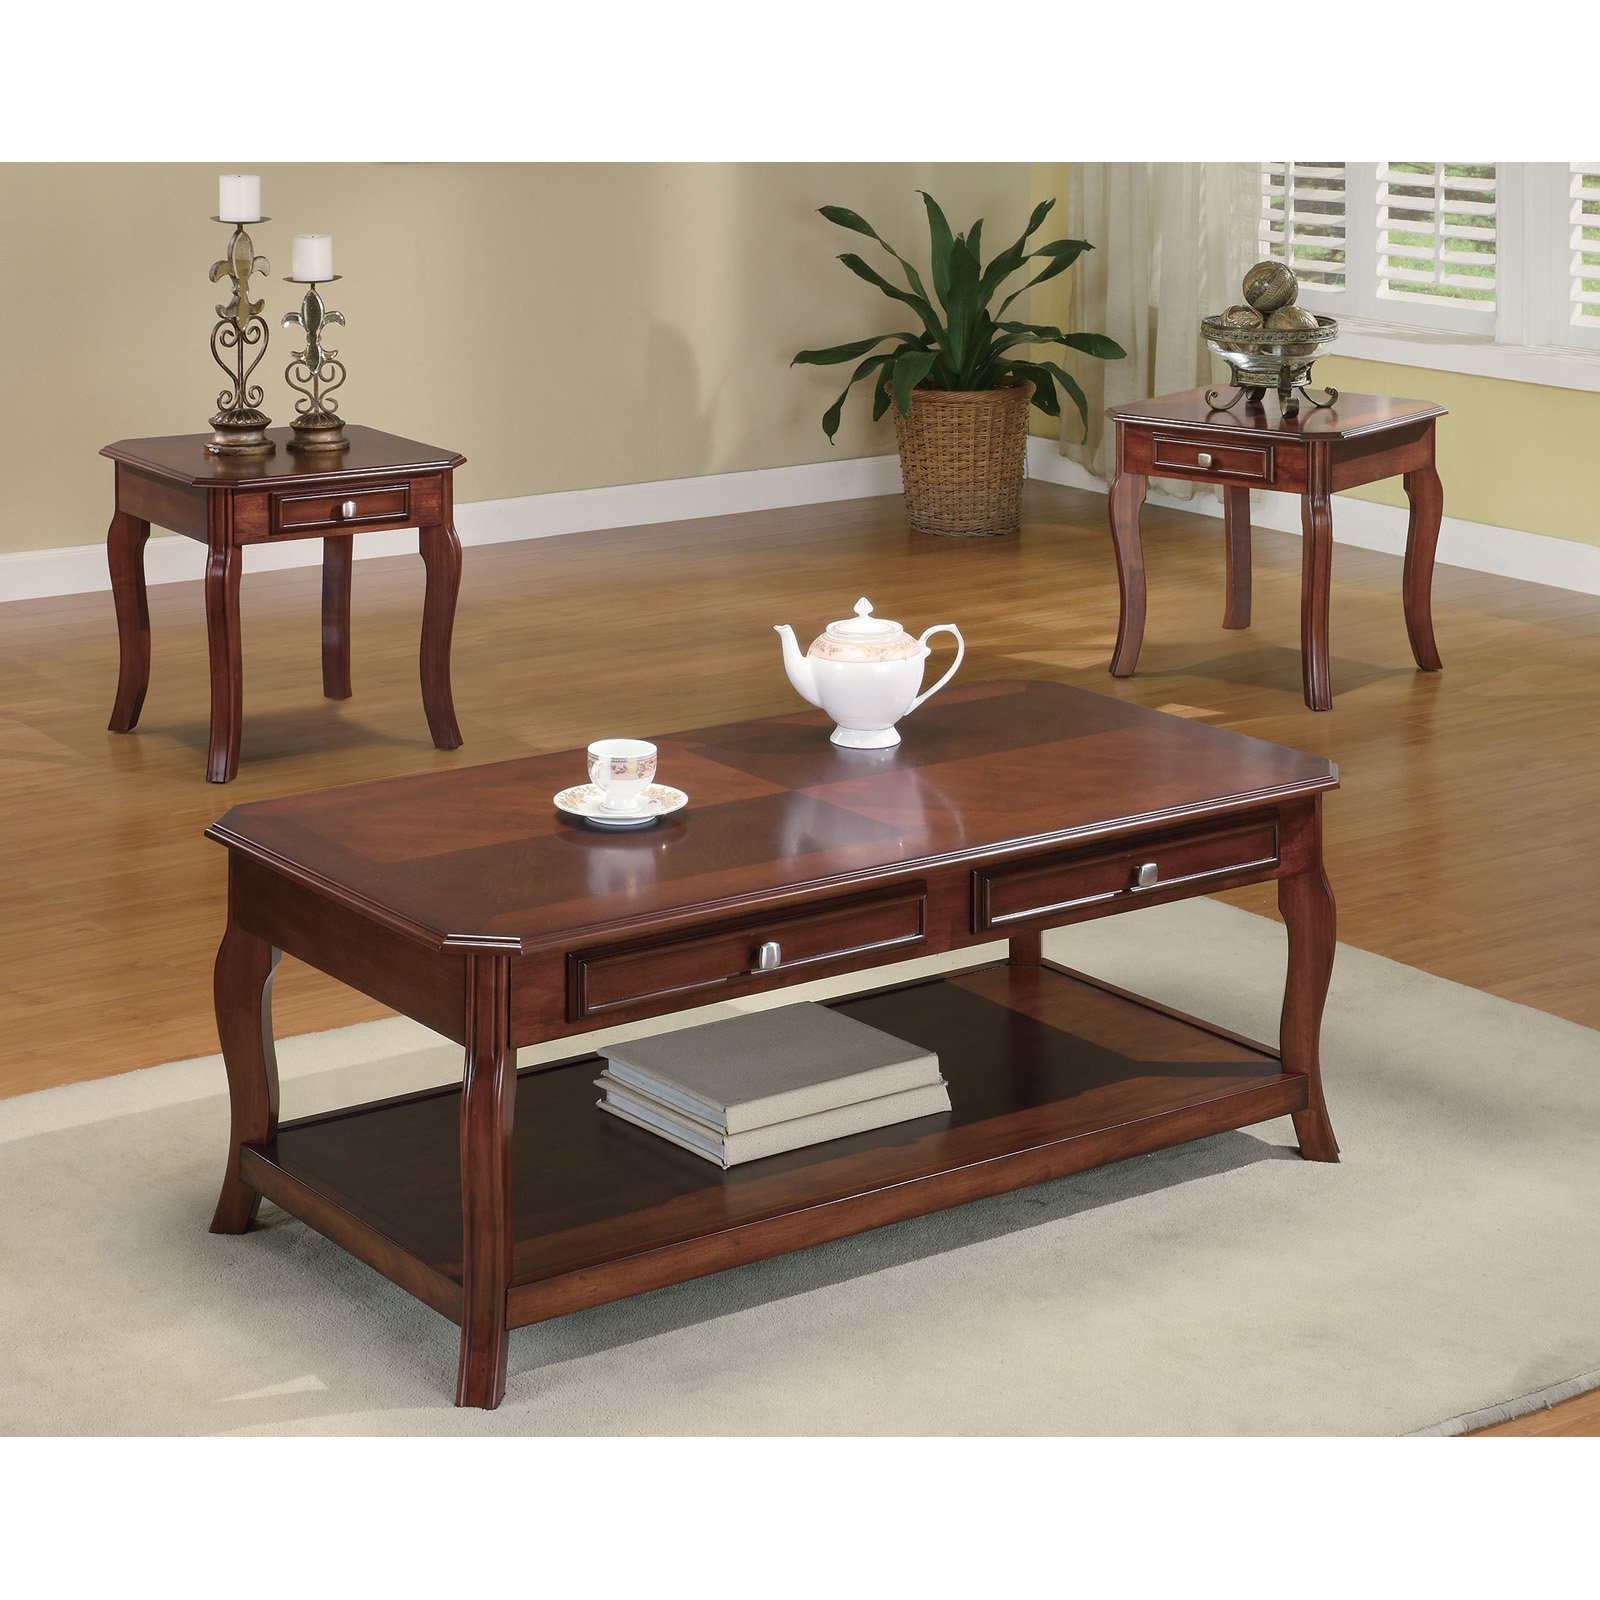 Coaster 3-Piece Table Set, Light Warm Bourbon Finish